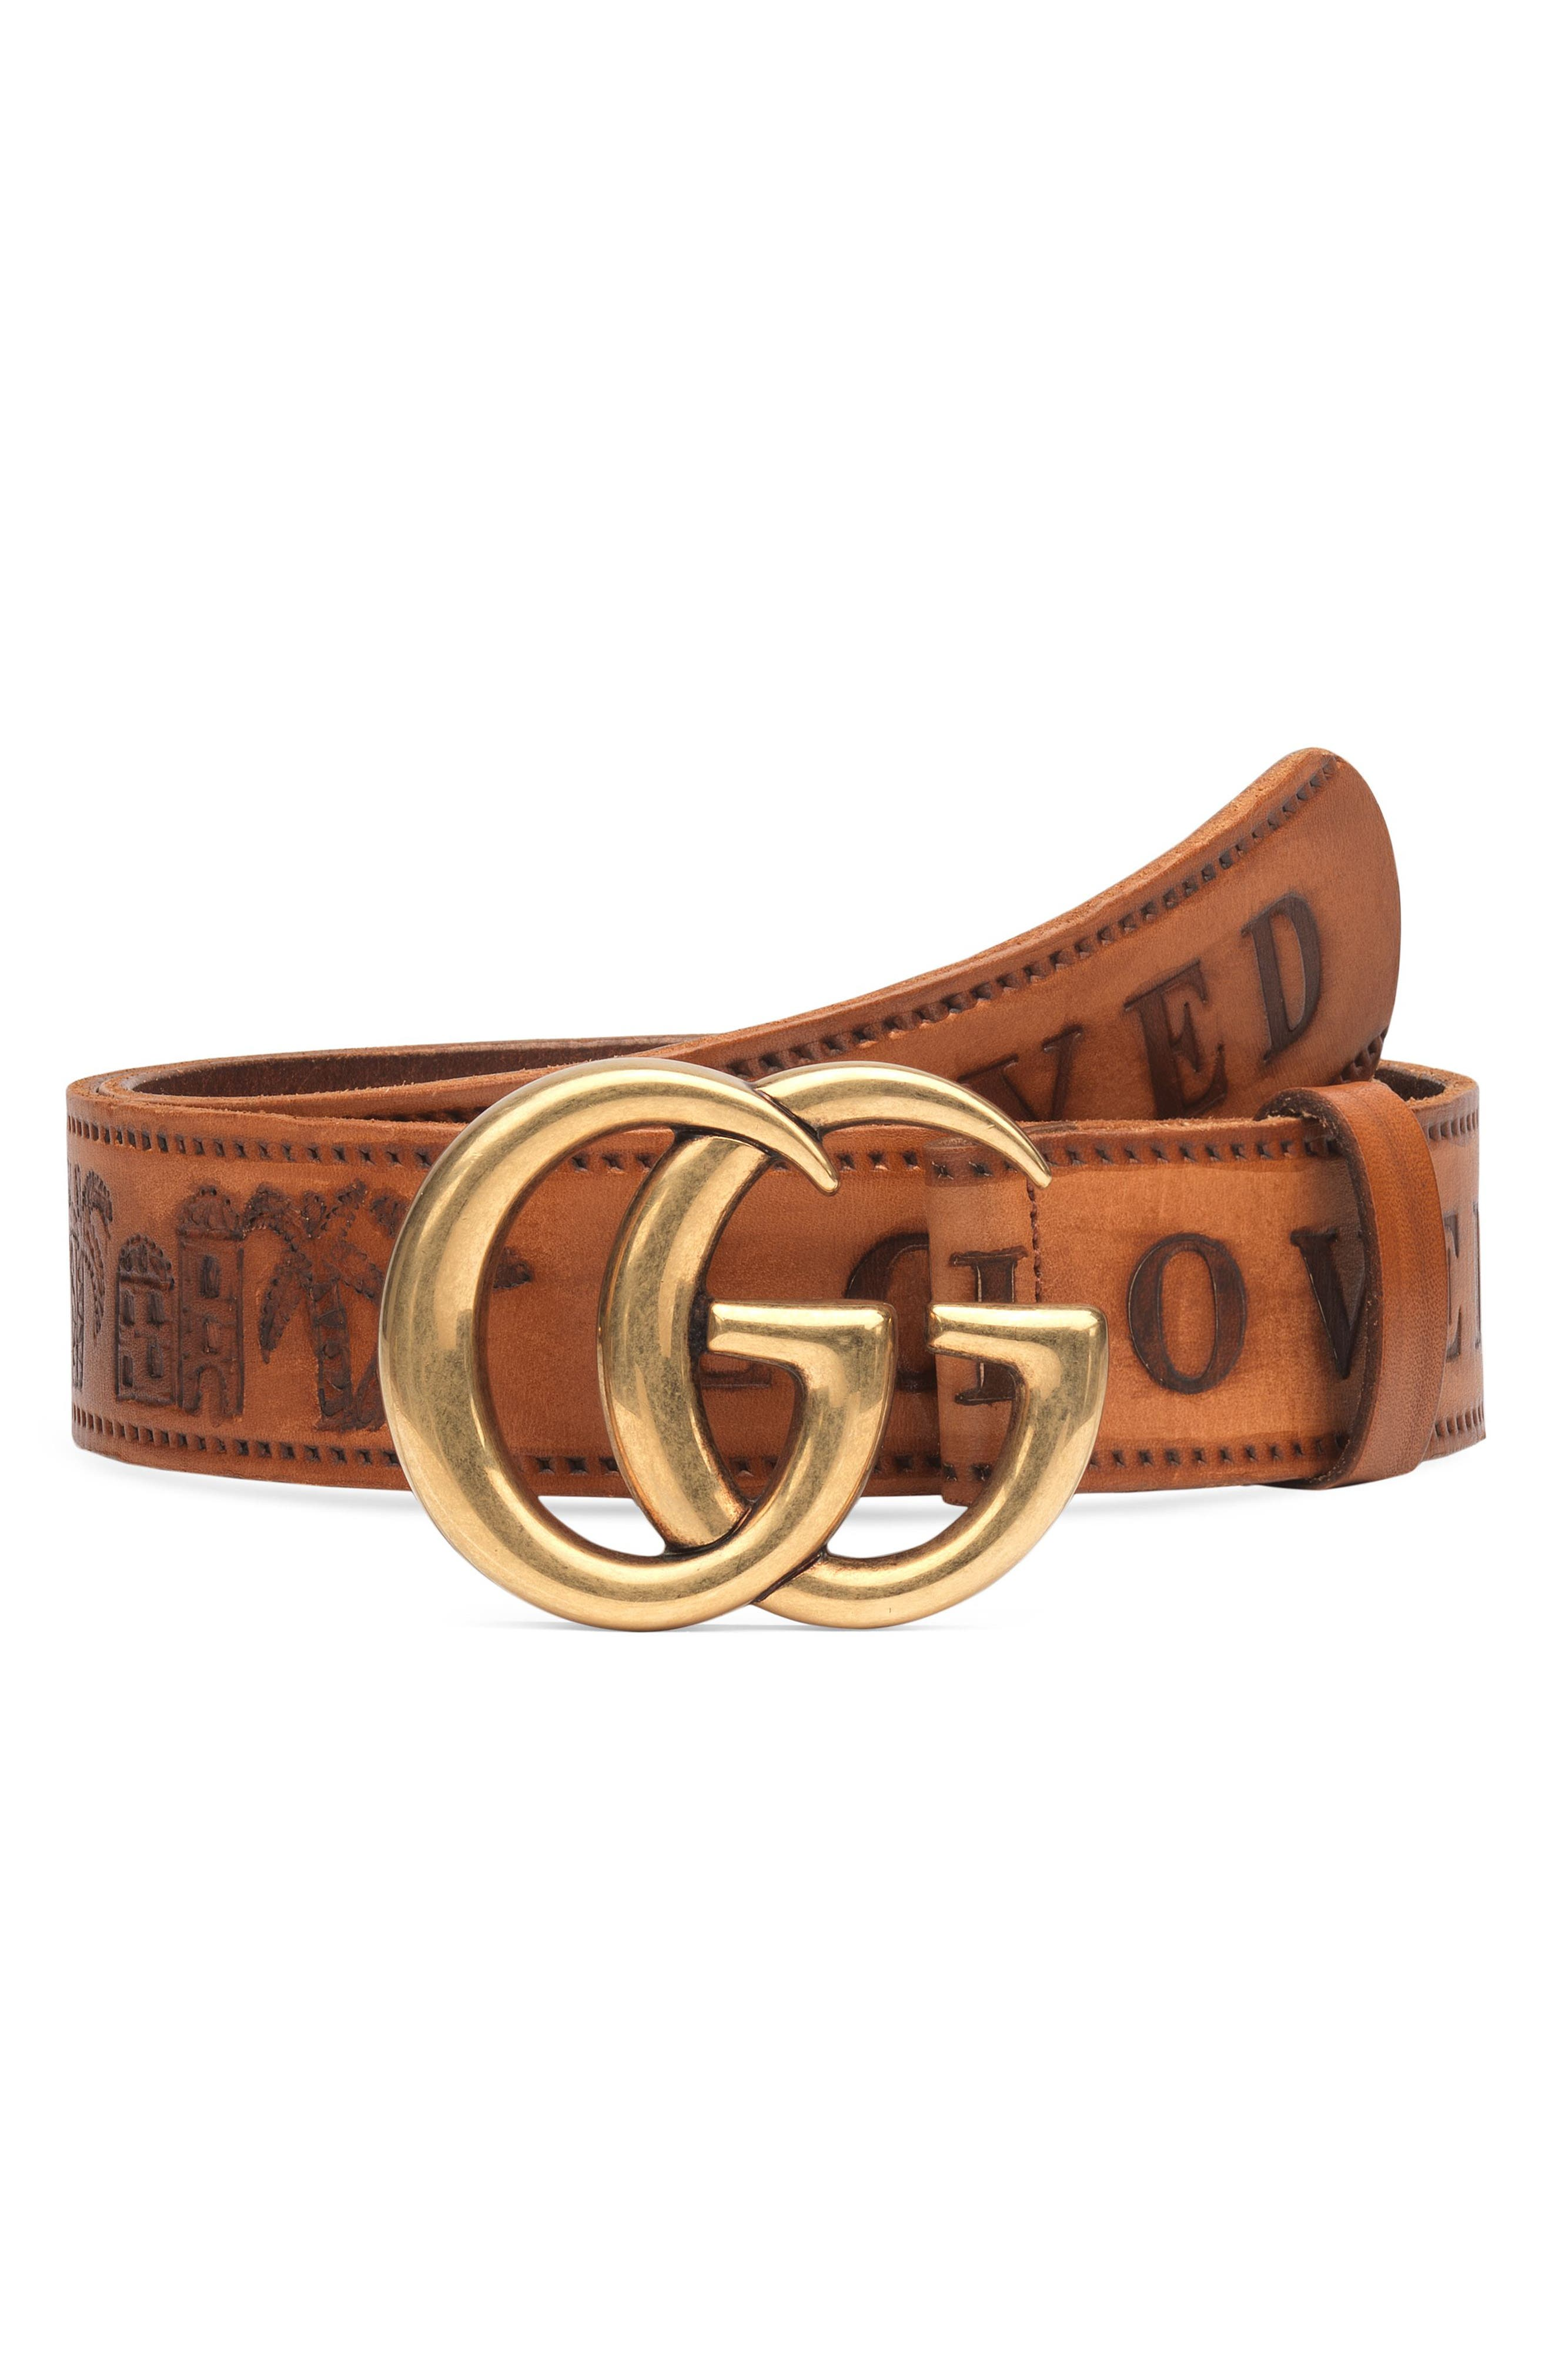 GG Logo Loved Calfskin Leather Belt,                             Main thumbnail 1, color,                             Cuoio/ Cuoio